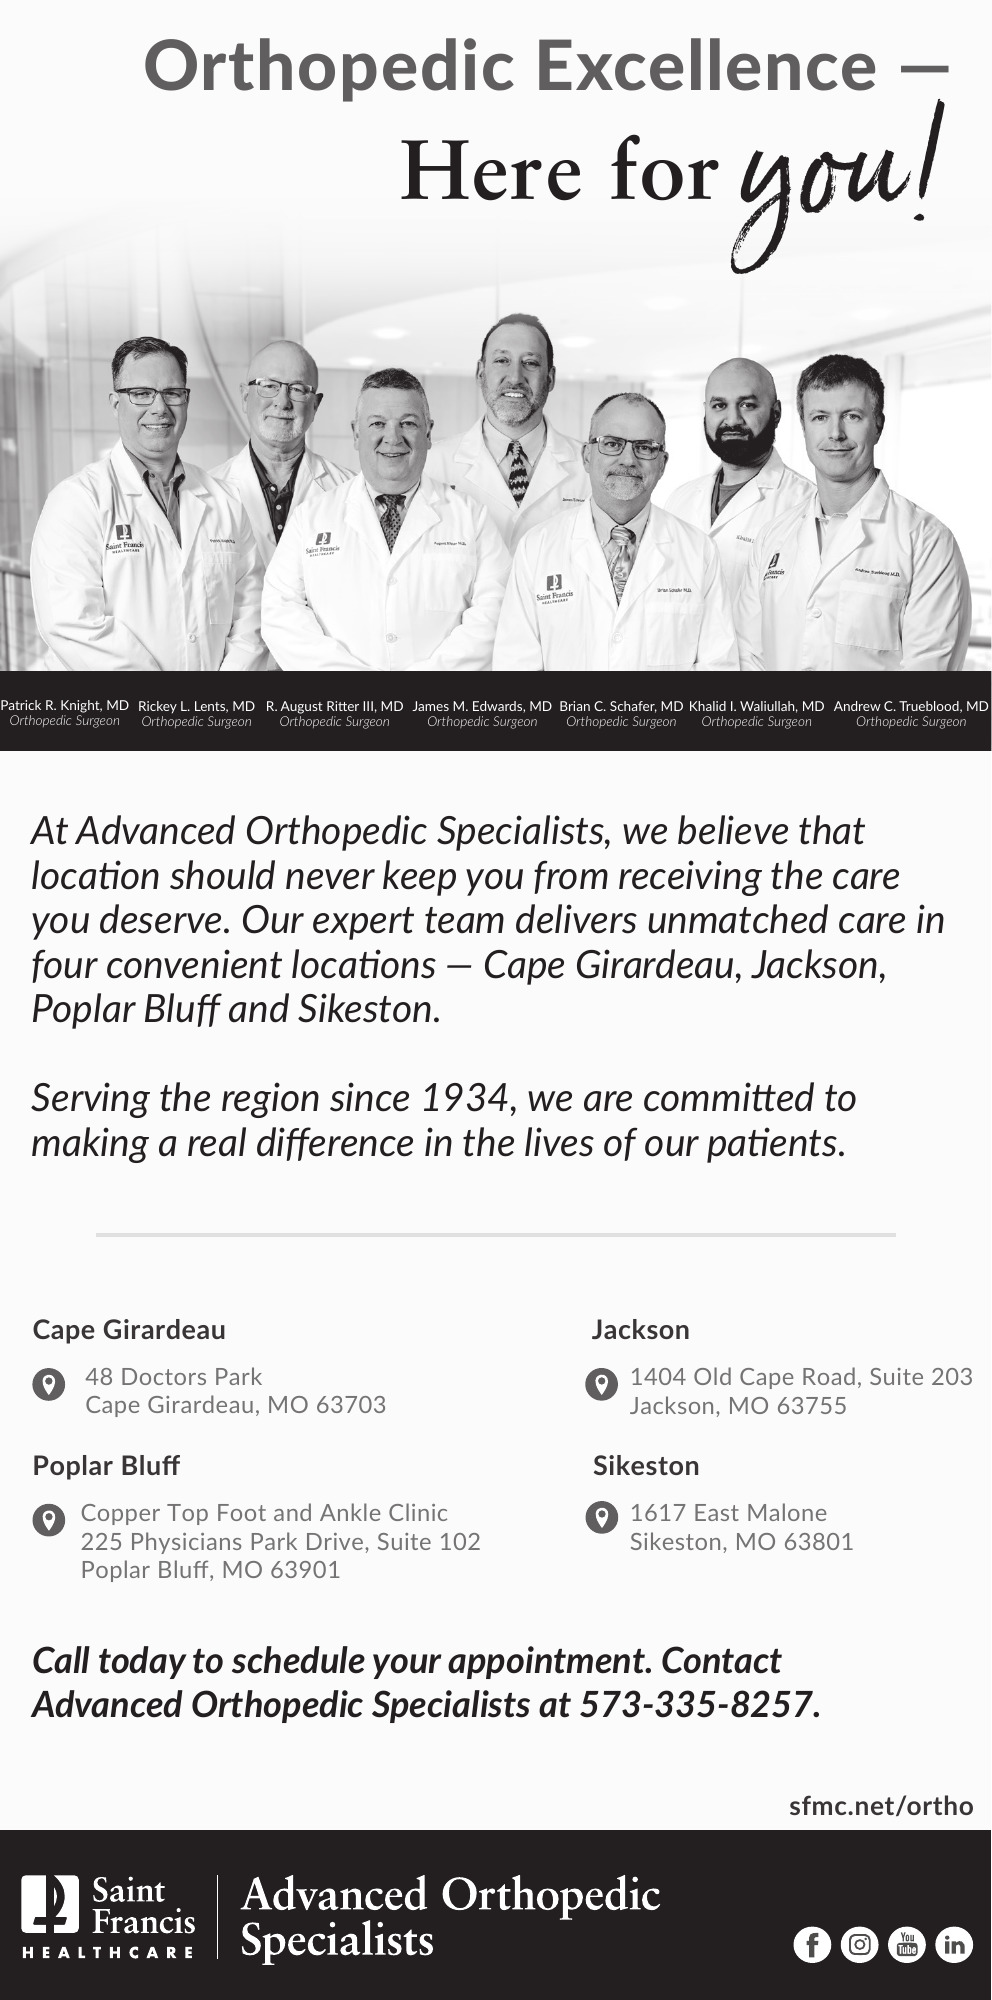 Saint Francis Medical - Orthopedic Excellence | Daily